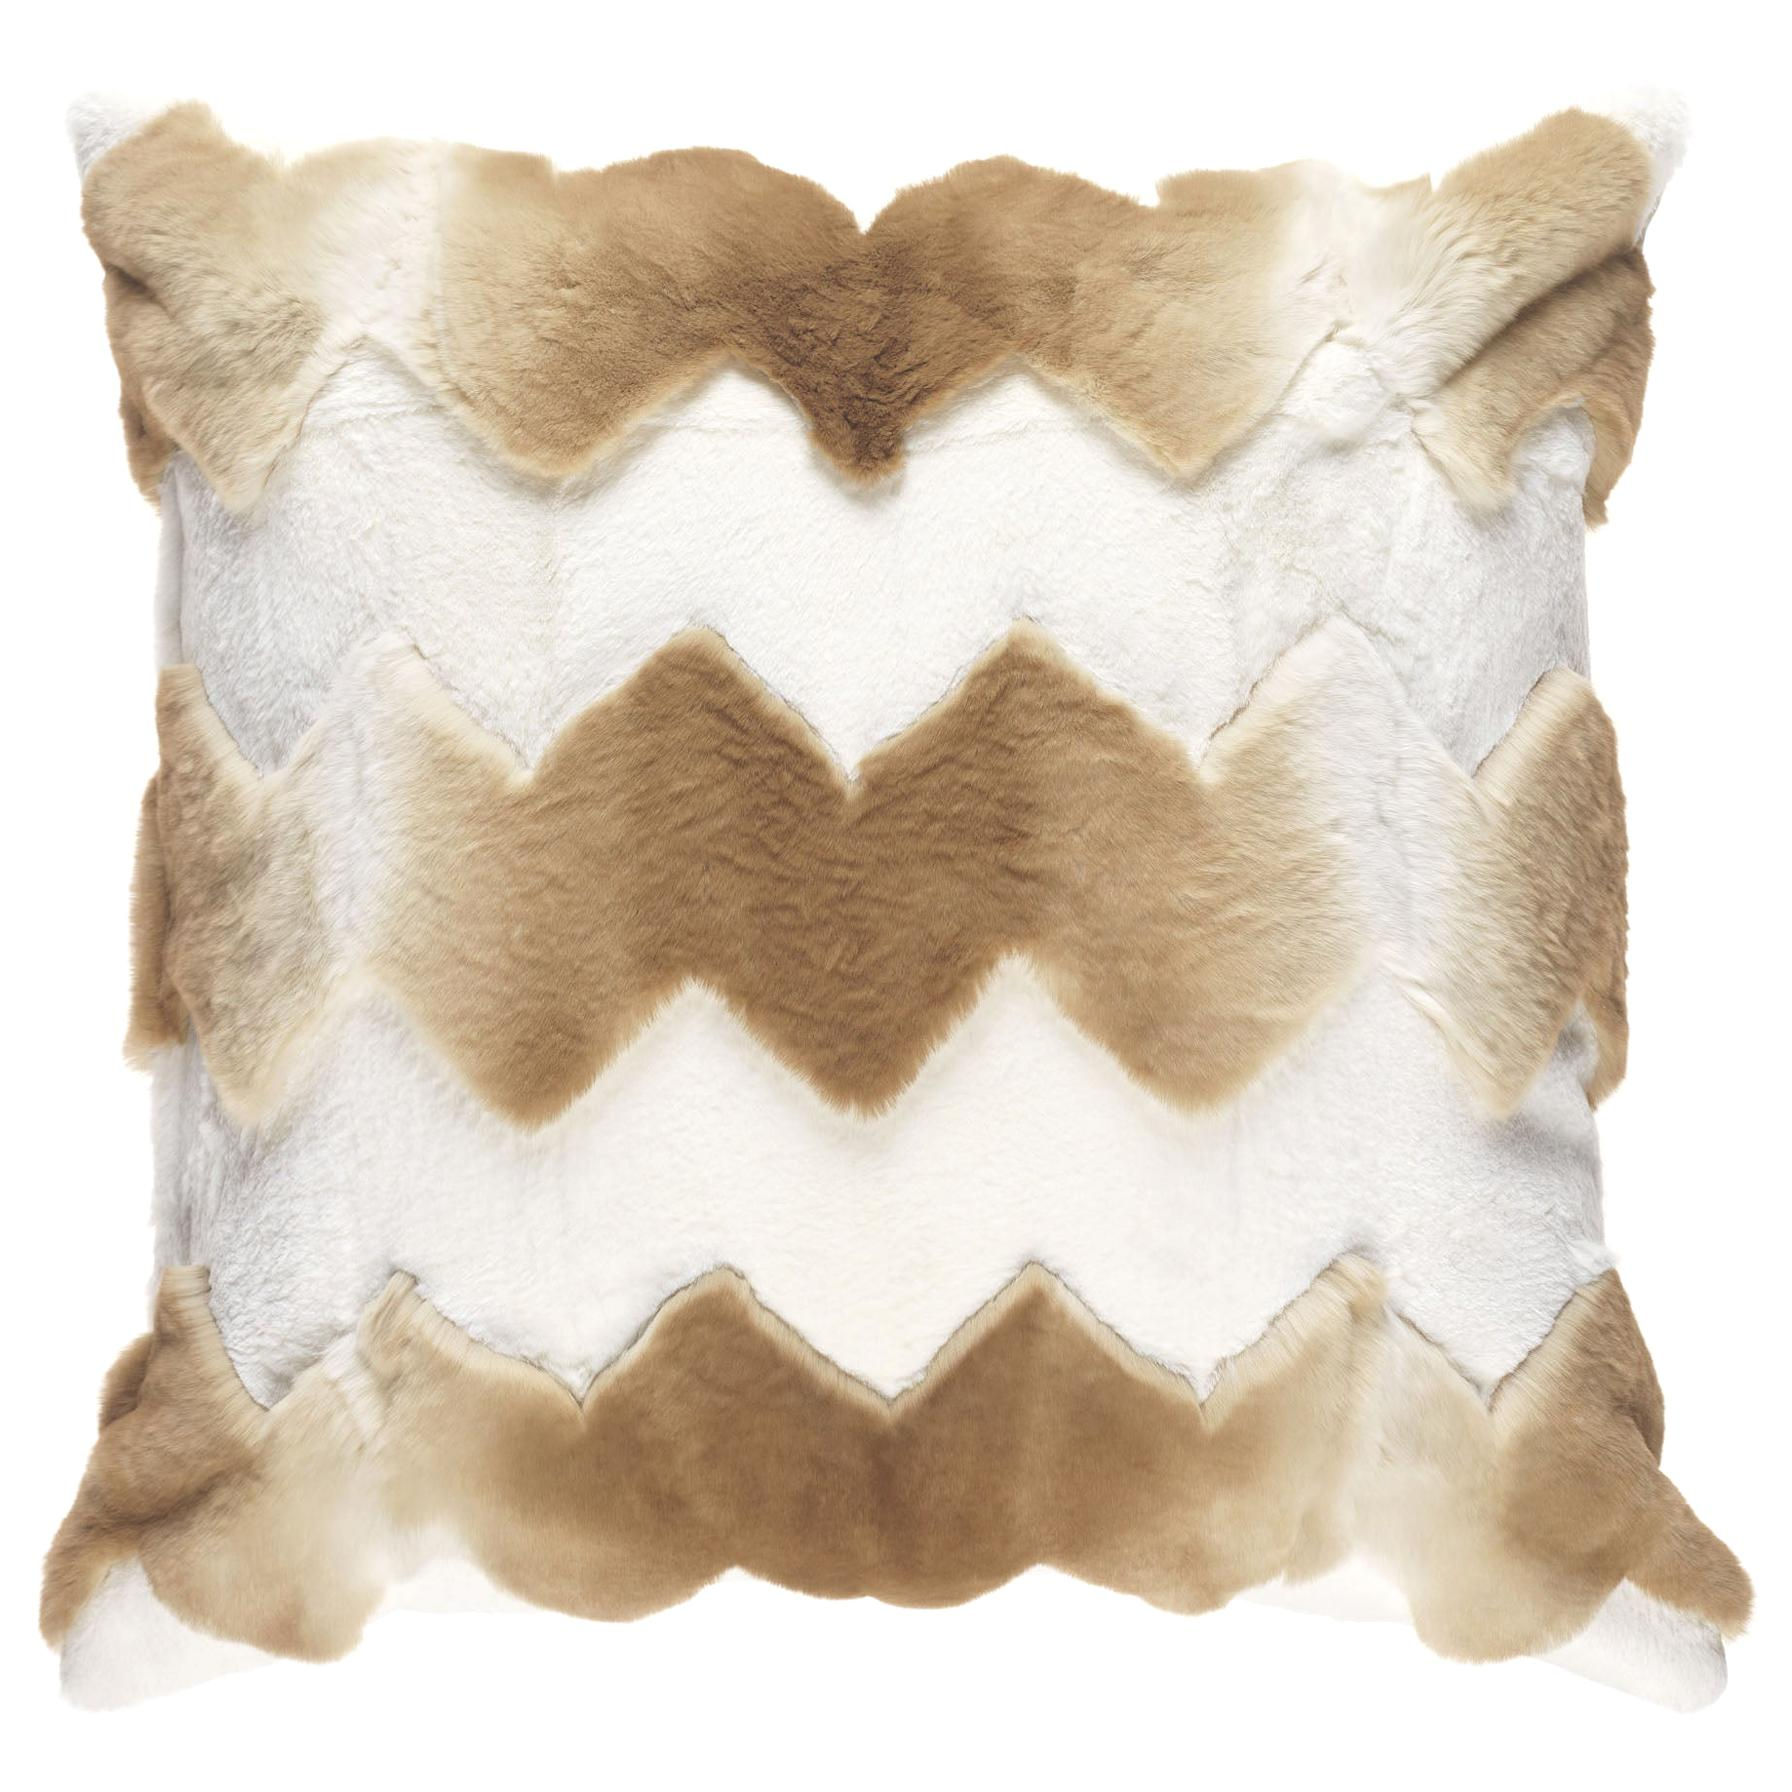 Gianfranco Ferré Home Kirah Chevron Beige Cushion in Orylag and Velvet